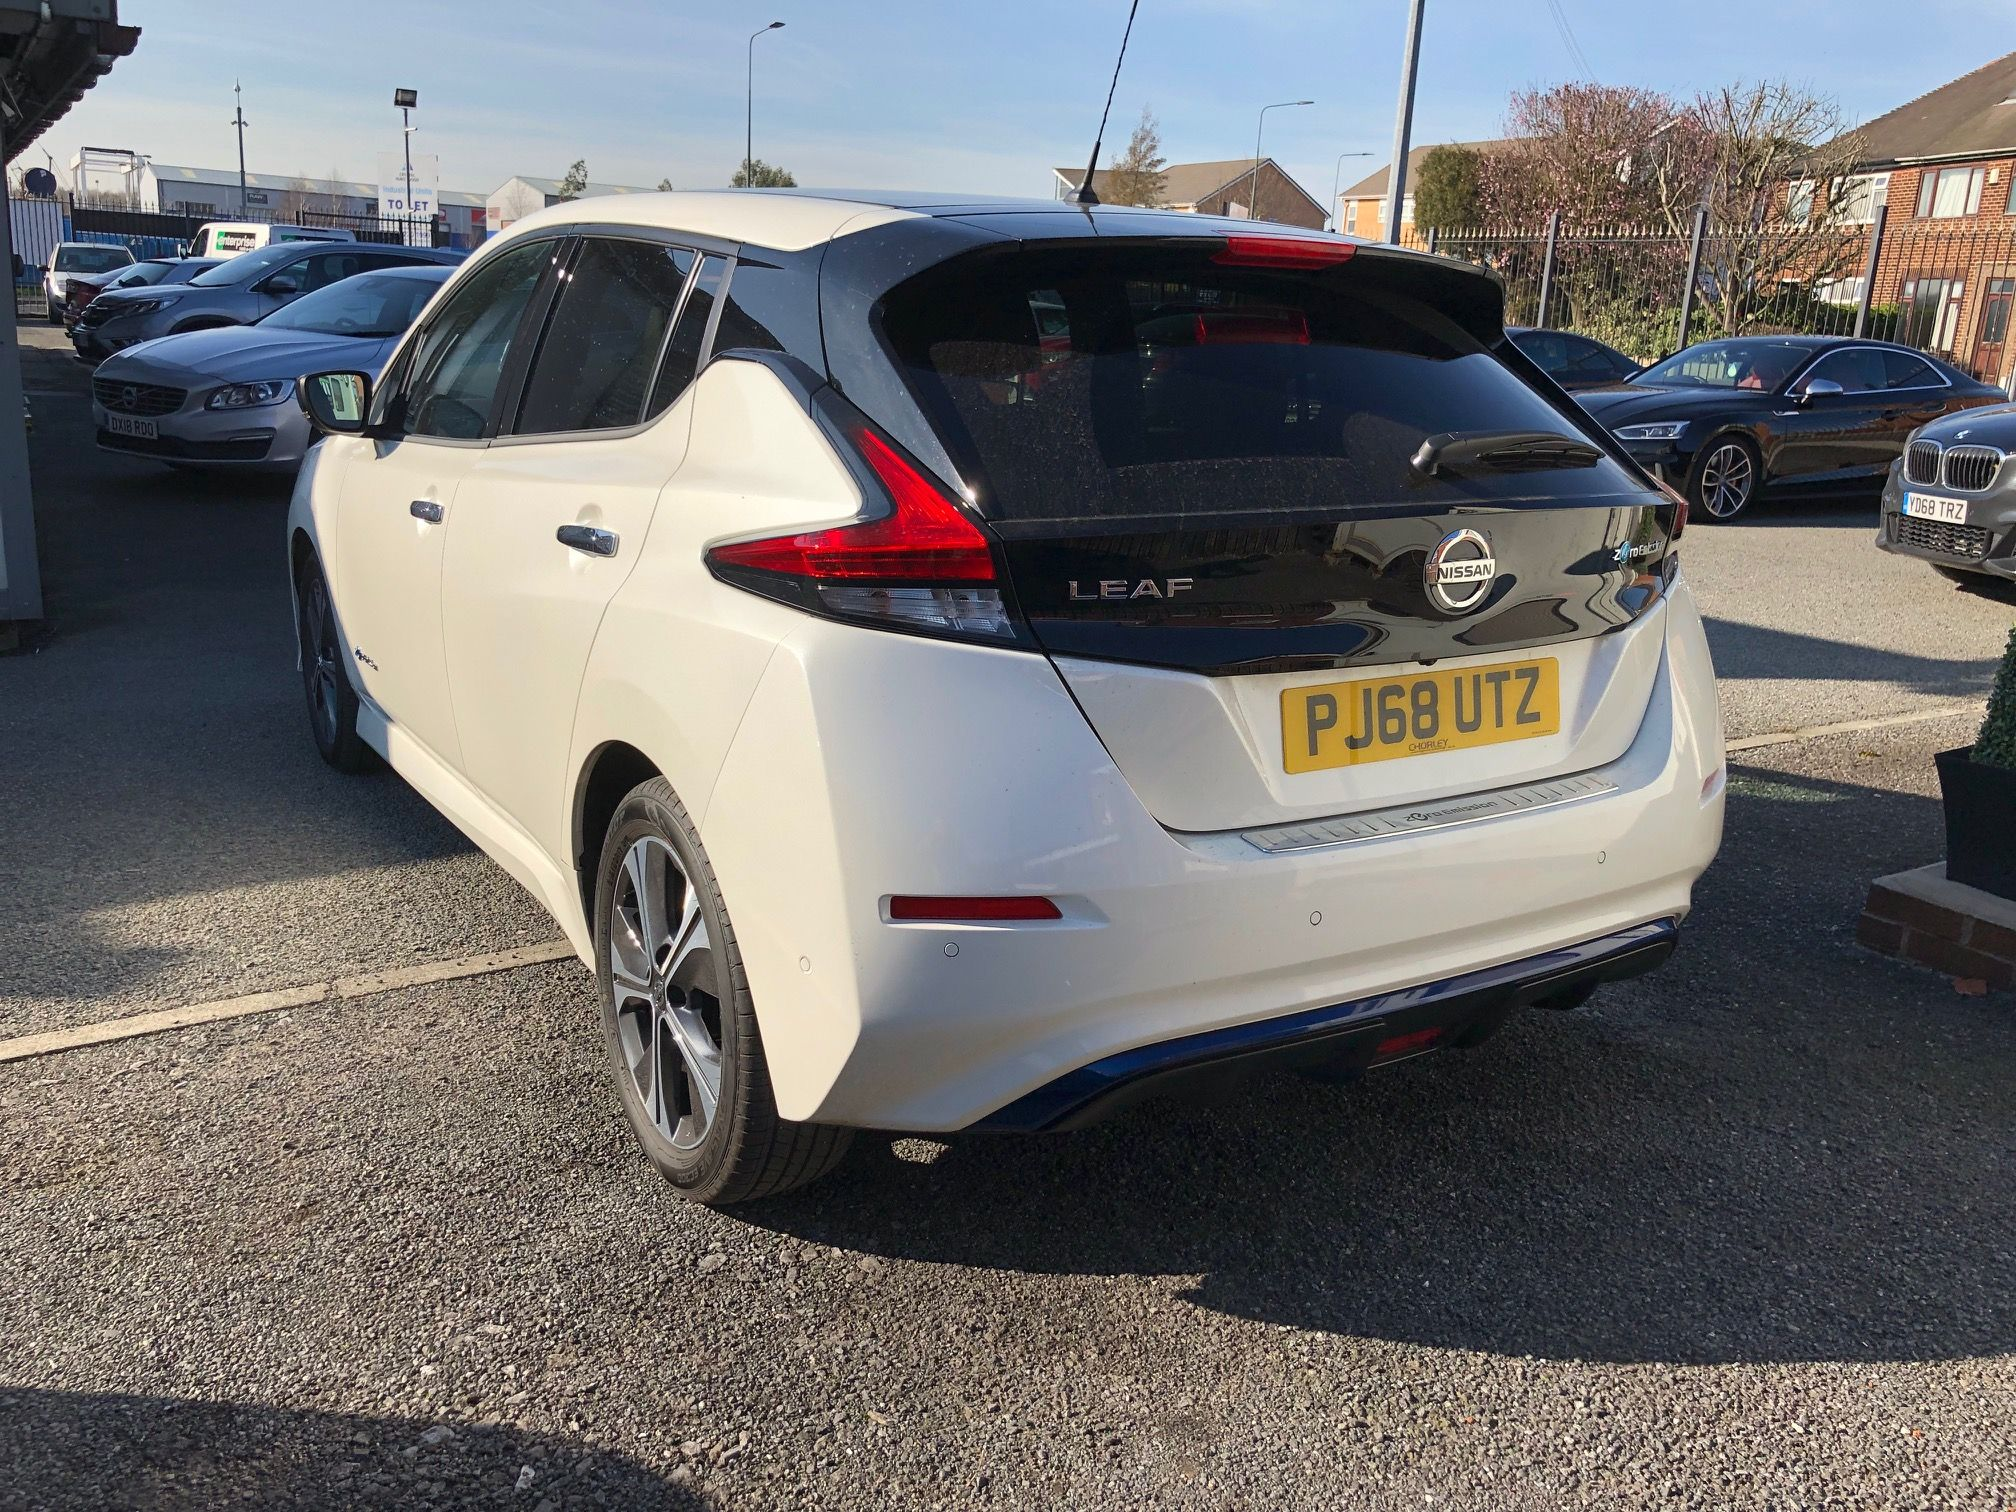 The Nissan Leaf Hatchback 110kw Tekna 40kwh 5dr Auto Electric Car Leasing Deal